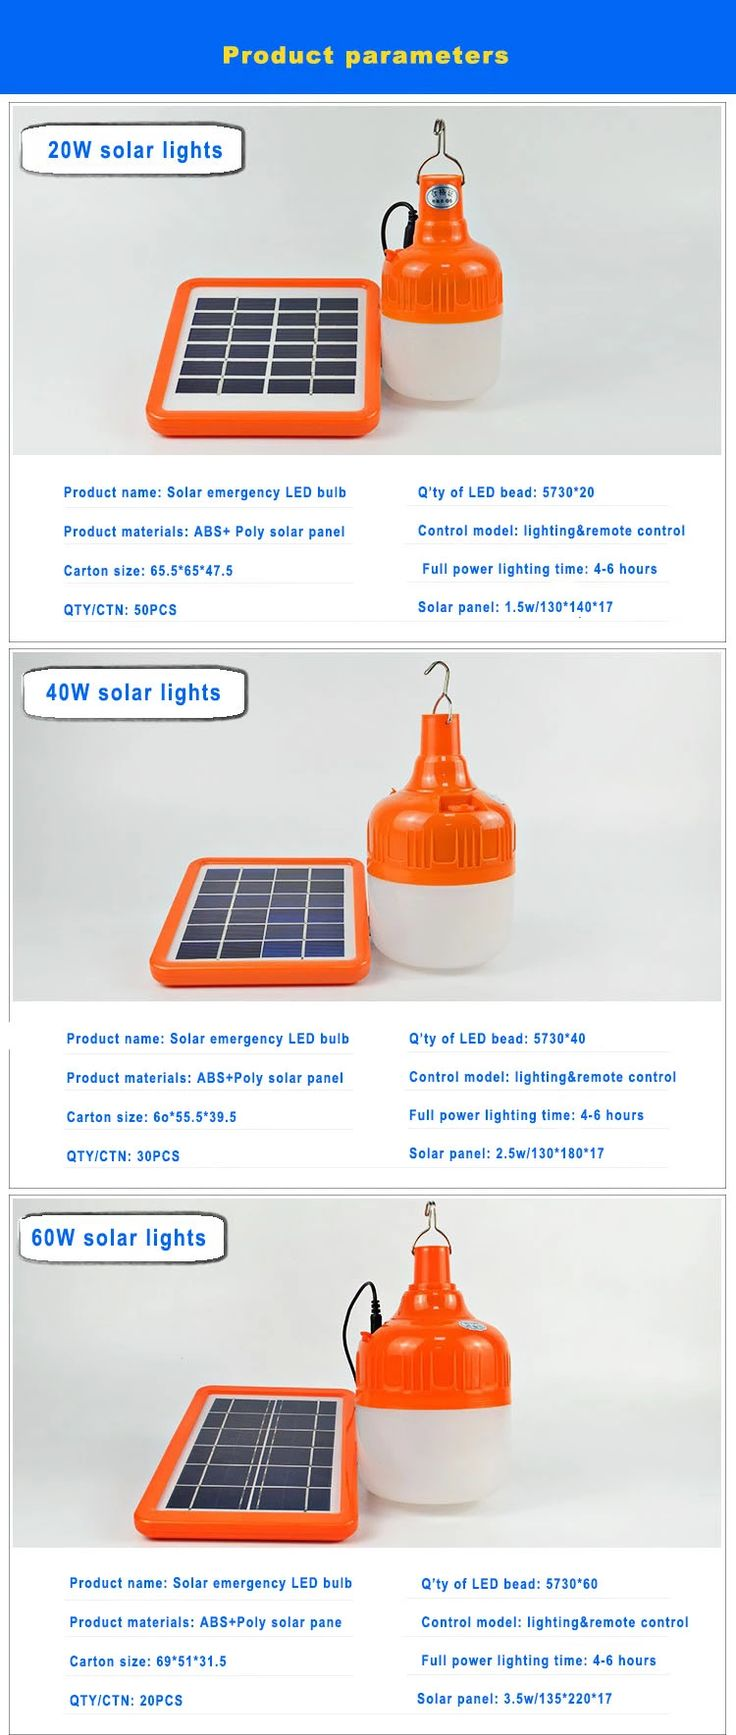 Home Application Dc Solar Lighting Hand Lantern Type Using At Dark Night For Lighting Up For Home Use B In 2020 Solar Lights Solar Lighting System Small Solar Lights